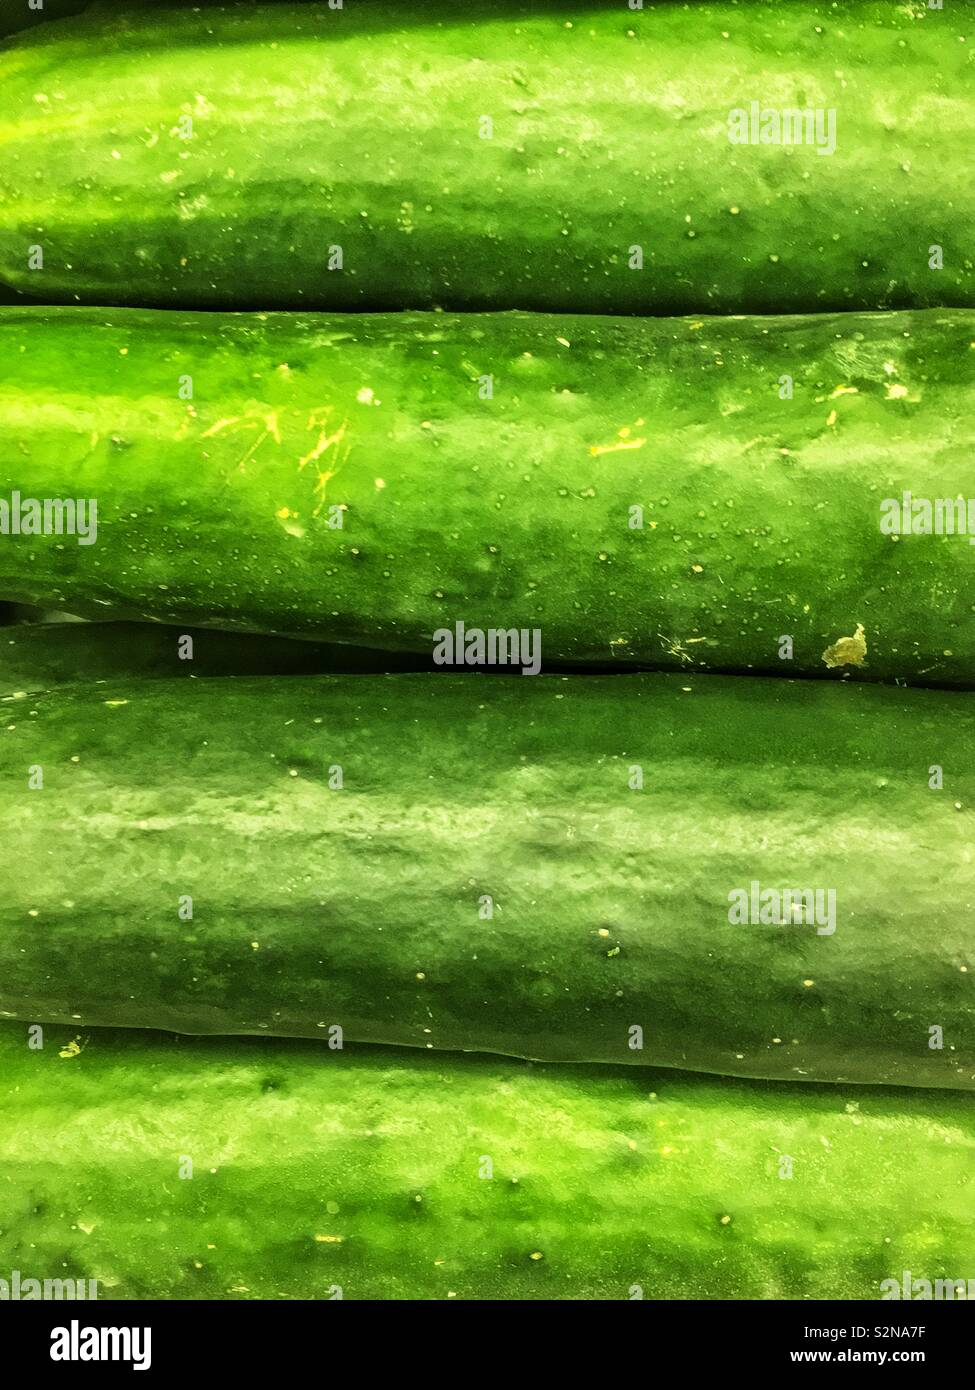 Full frame closeup of four fresh tasty green cucumbers on display and for sale at the local produce market. - Stock Image